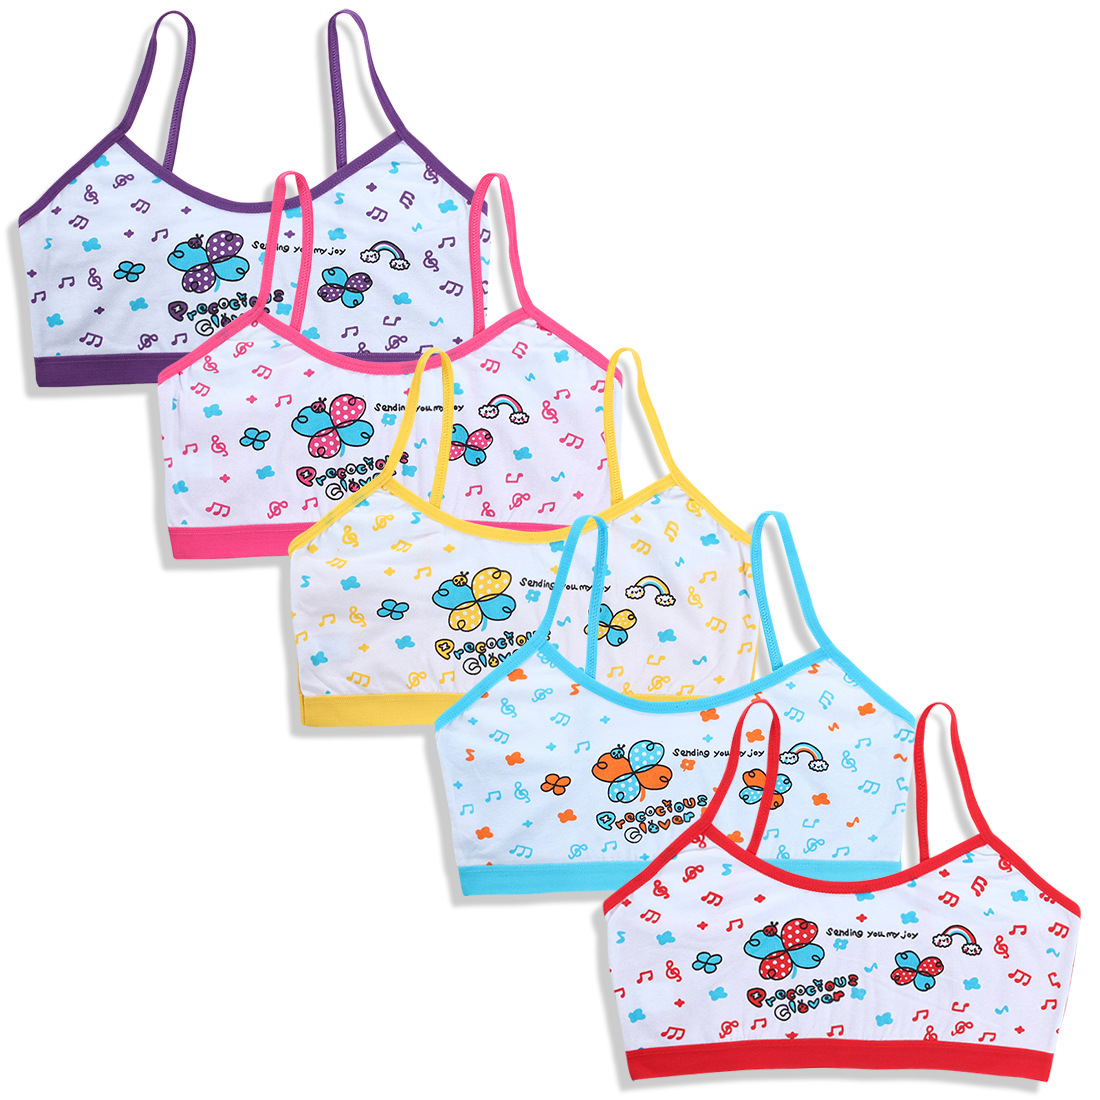 3Pc/lot Teenager Tank Top For Girls Cotton Kids Underwear Model Cartoon Kids Singlets Children Camisole Baby Bras Undershirt